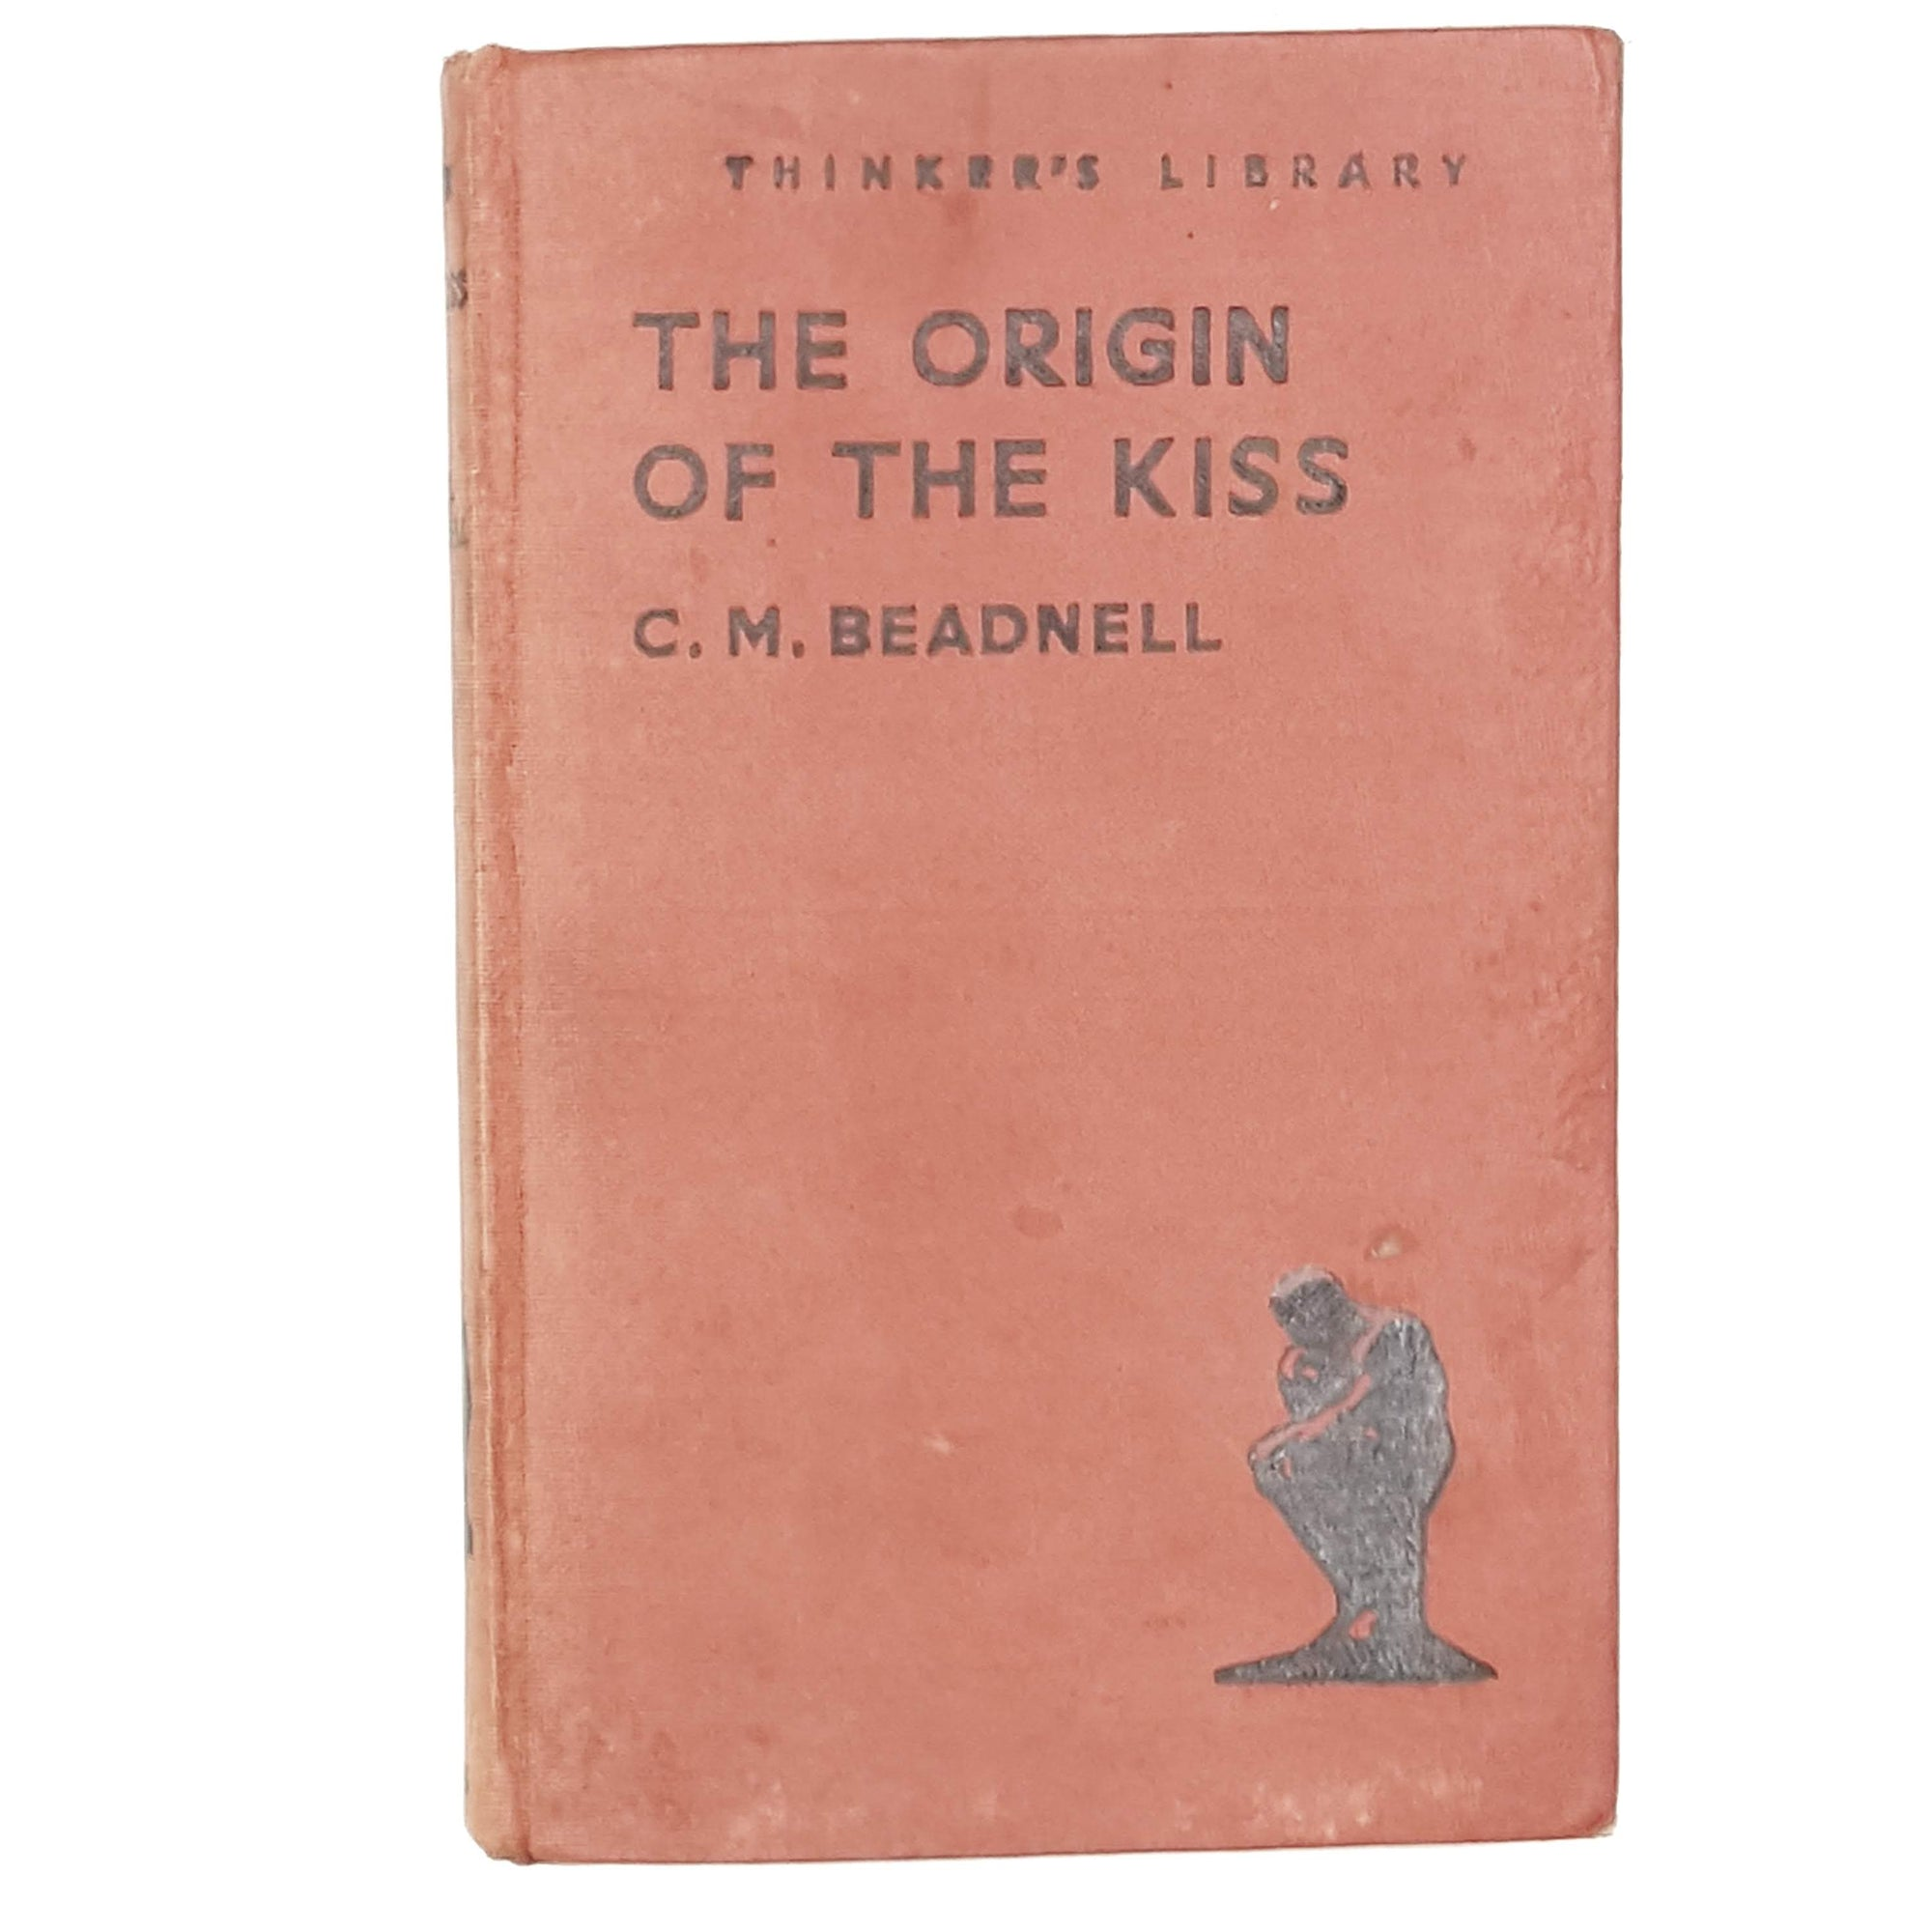 The Origin of the Kiss and Other Scientific Diversions by C. M. Beadnell